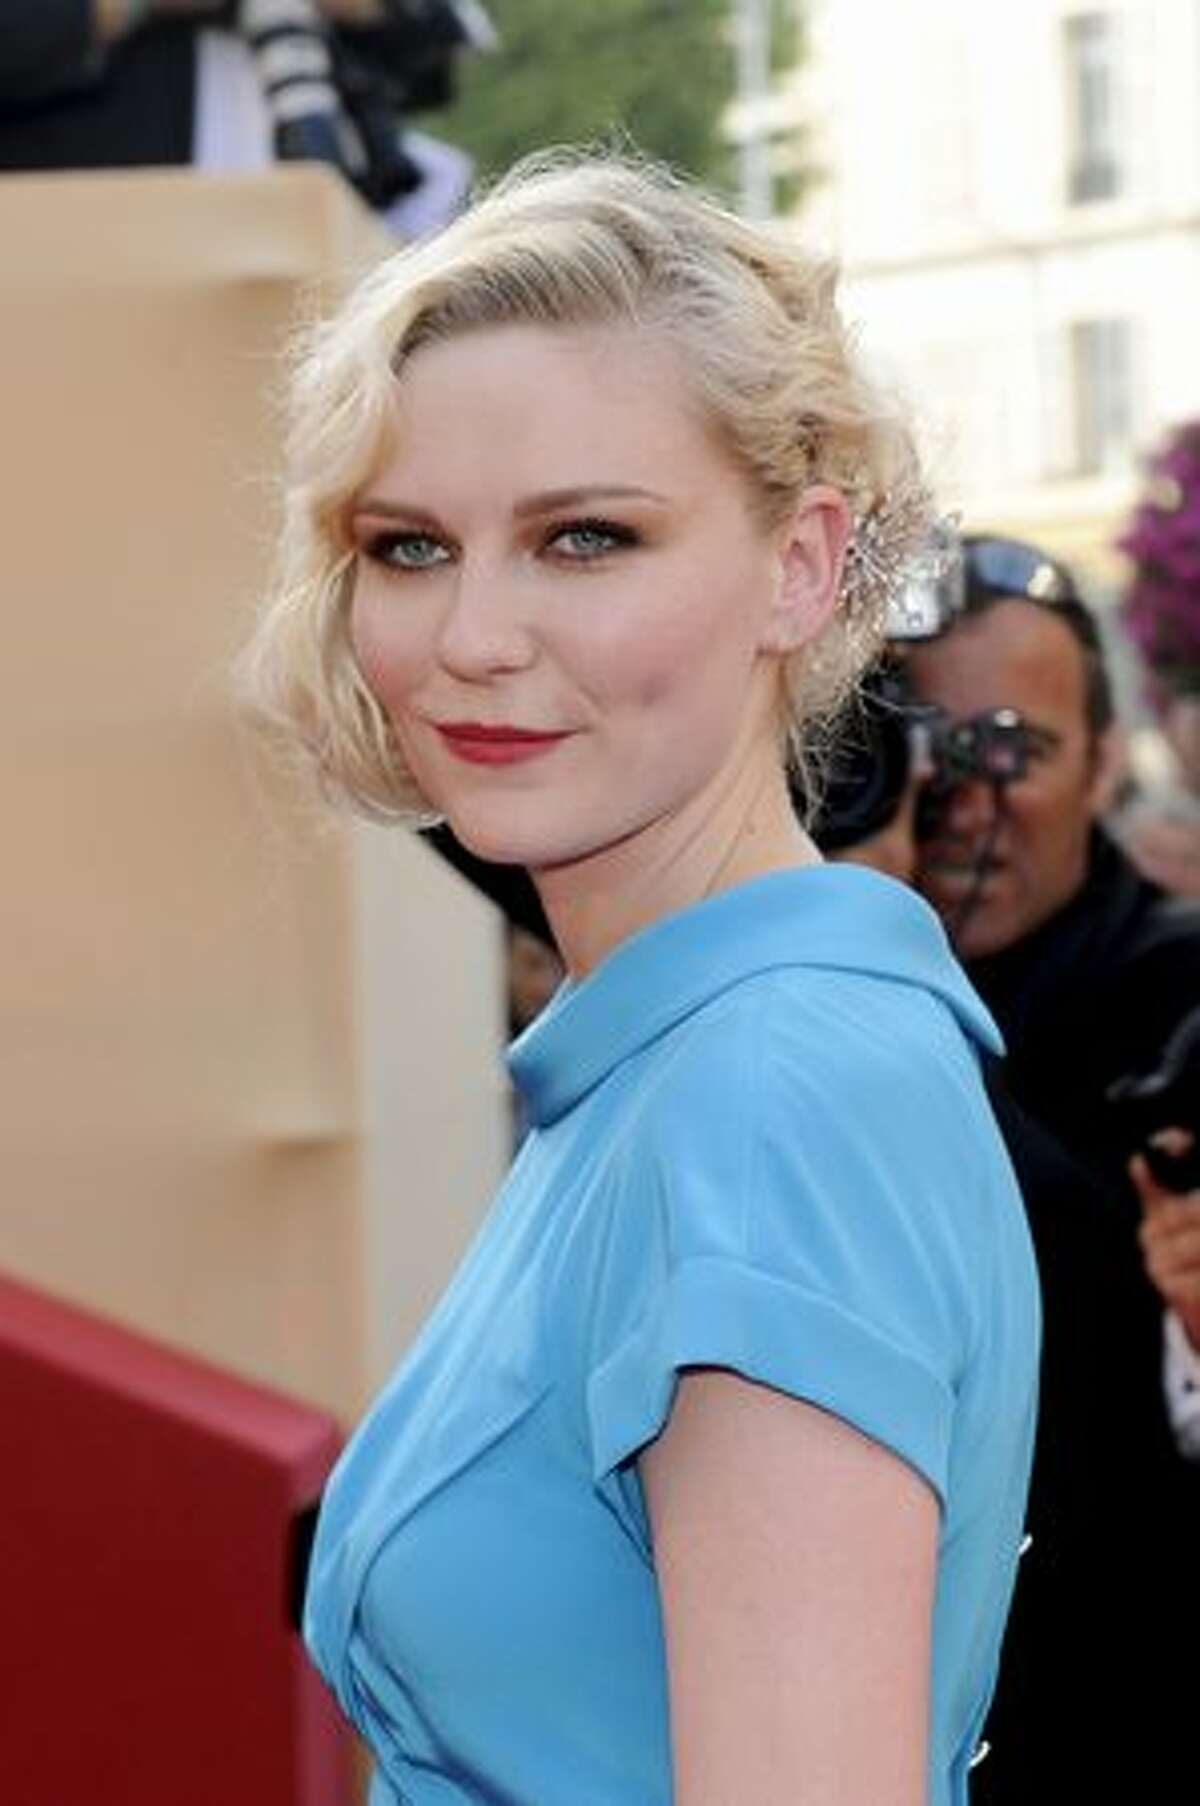 Kirsten Dunst, May 23, 2010, age 28.